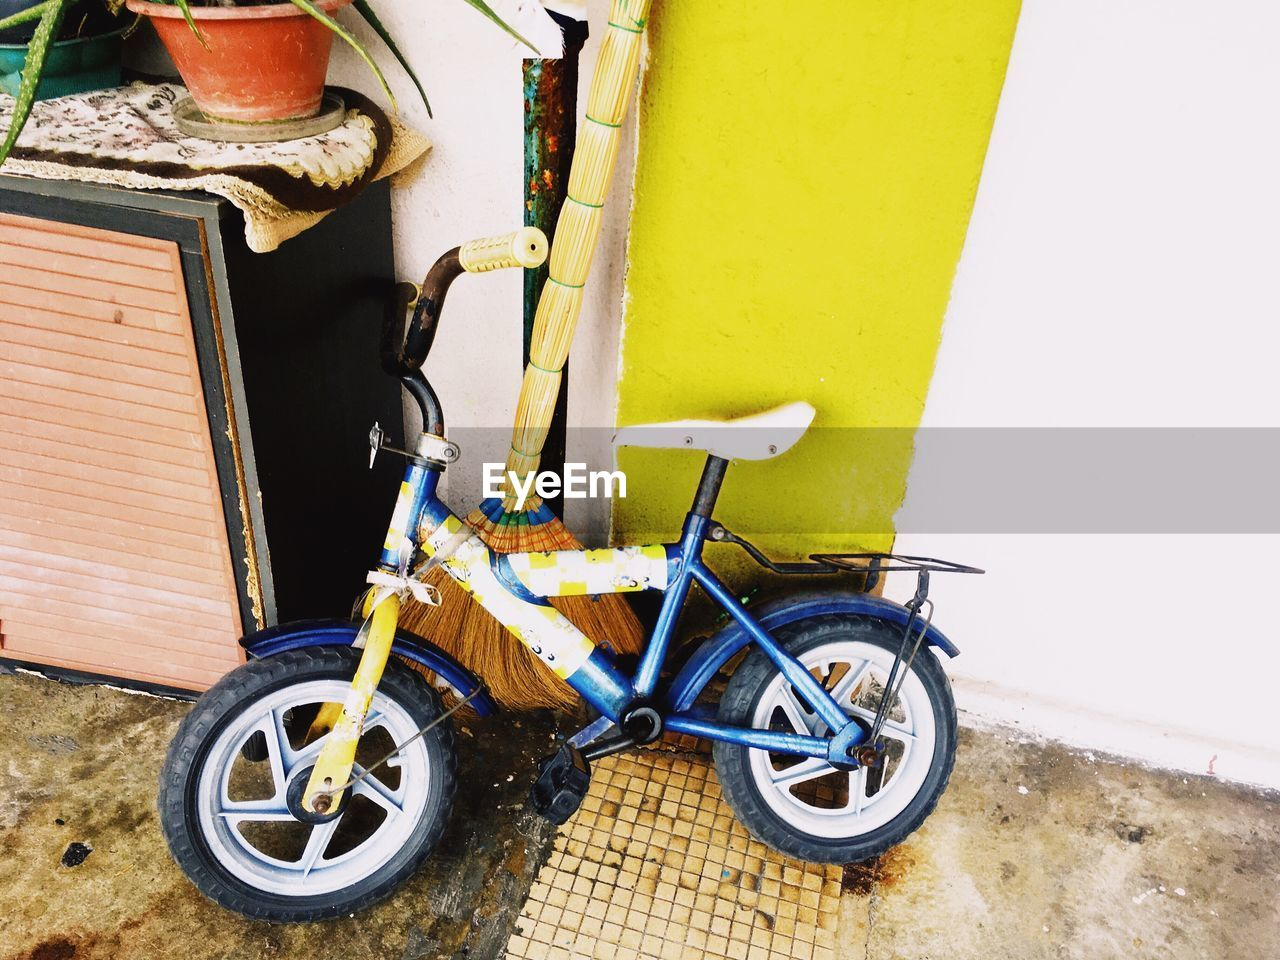 land vehicle, transportation, mode of transport, stationary, day, no people, outdoors, wheel, yellow, built structure, scooter, architecture, building exterior, tire